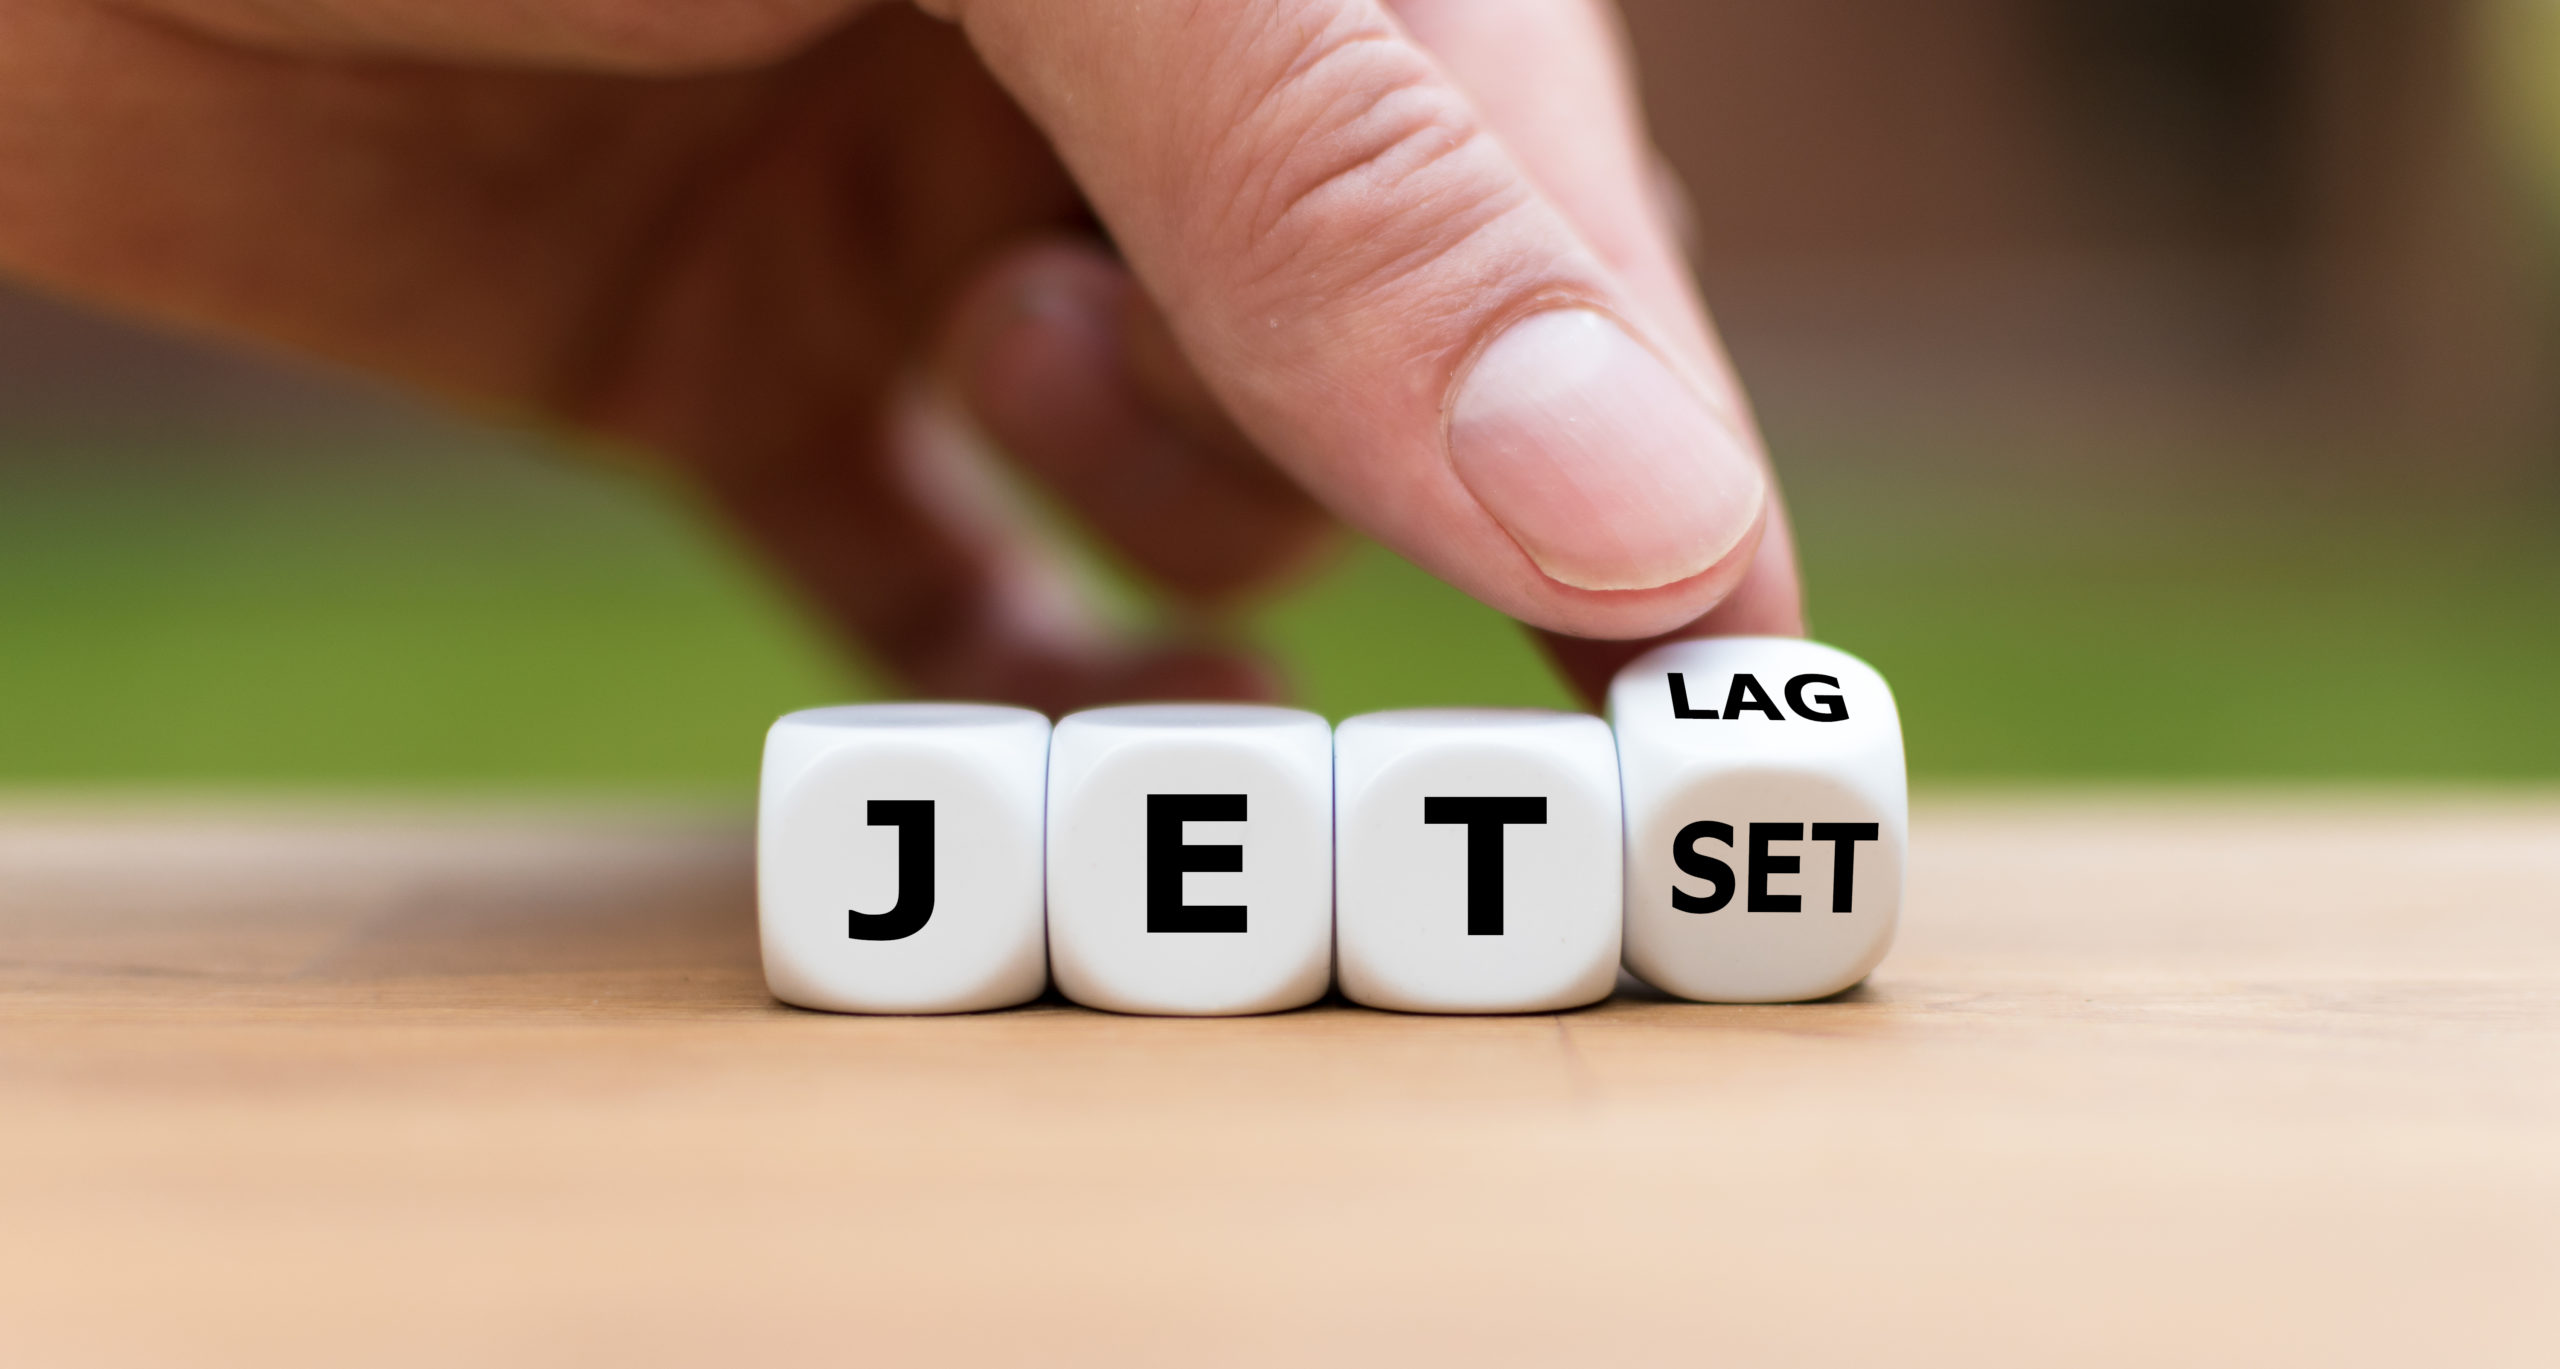 dice spelling out jet lag